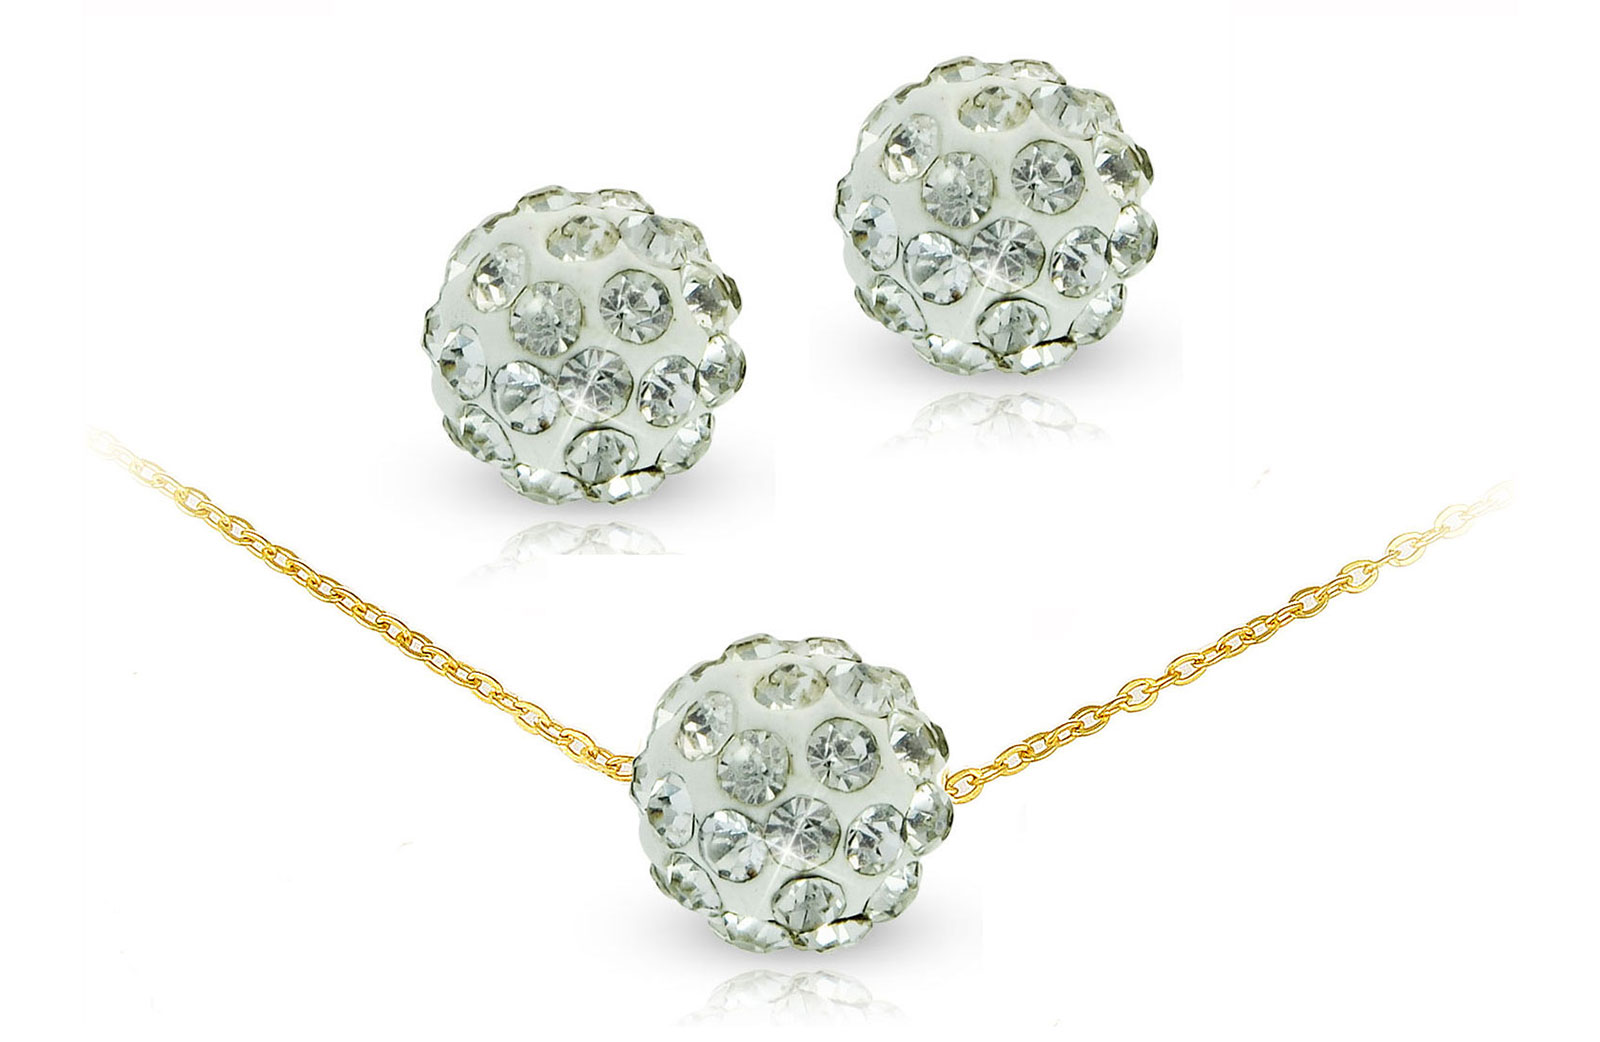 Vera Perla 18k Solid Gold 10mm Simple Crystal Ball Necklace & Earrings